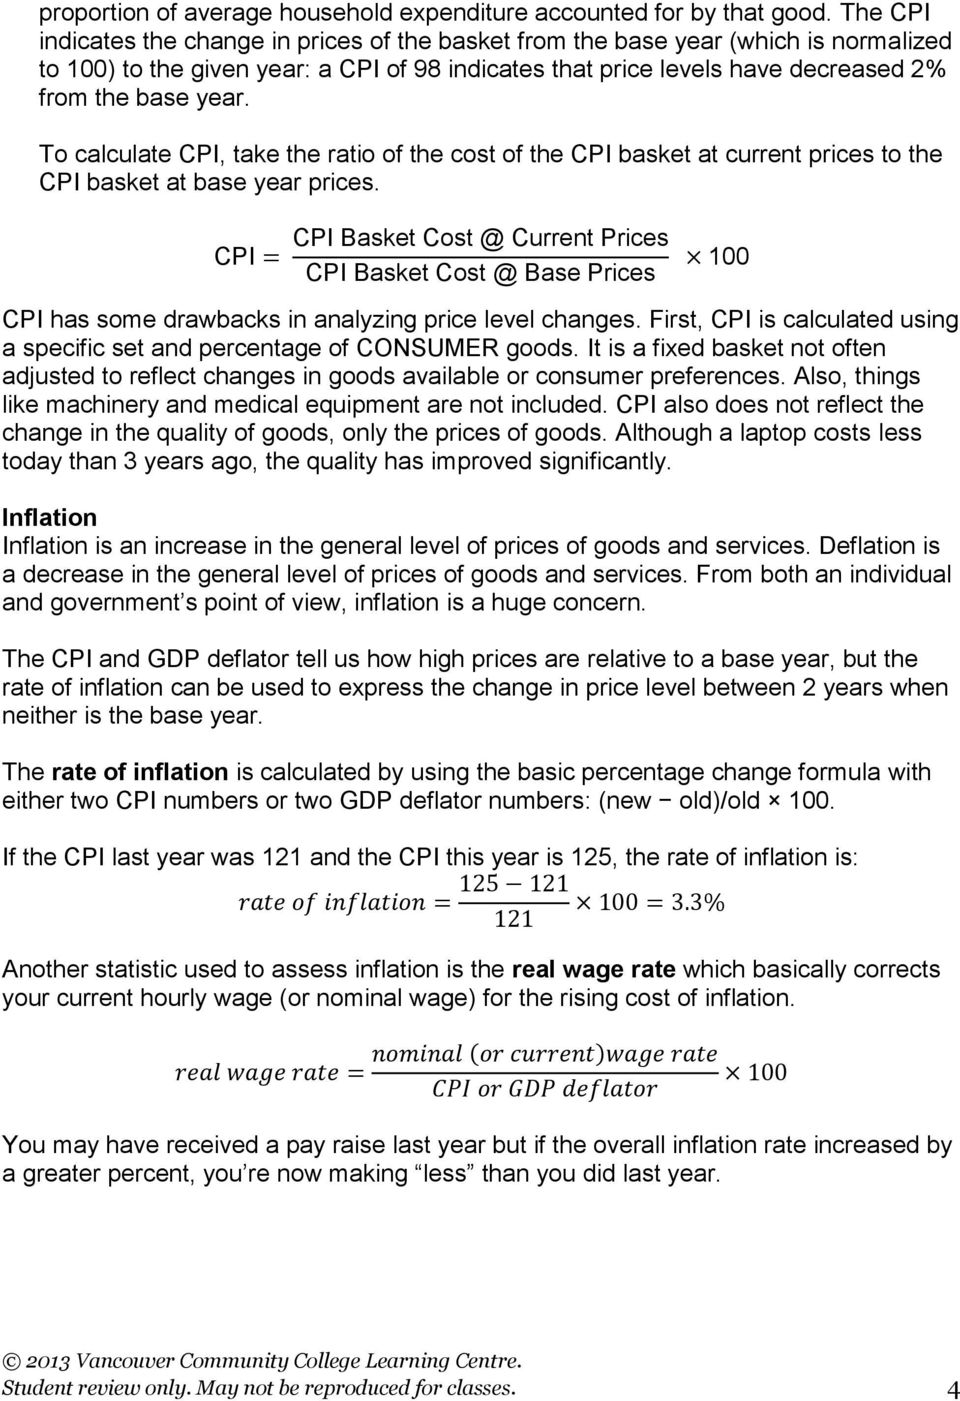 To calculate CPI, take the ratio of the cost of the CPI basket at current prices to the CPI basket at base year prices.